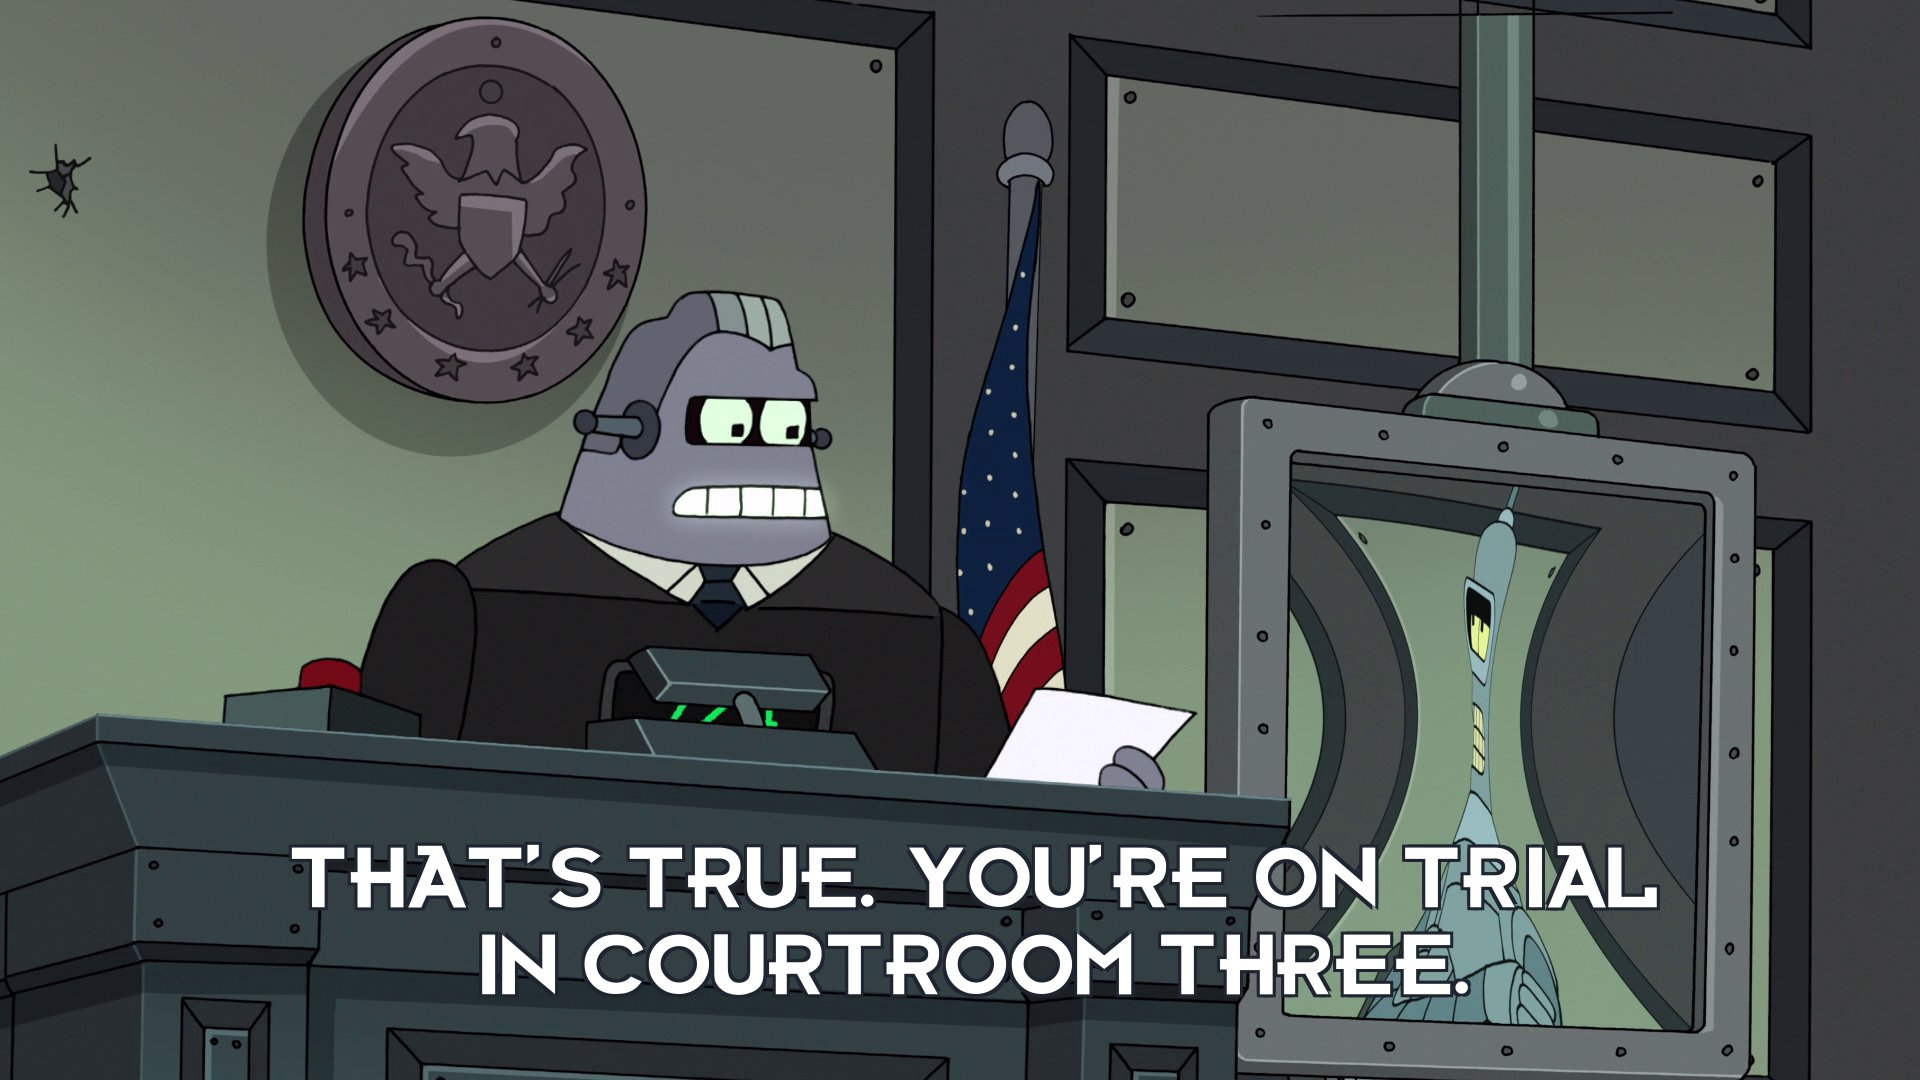 Judge 724: That's true. You're on trial in courtroom three.